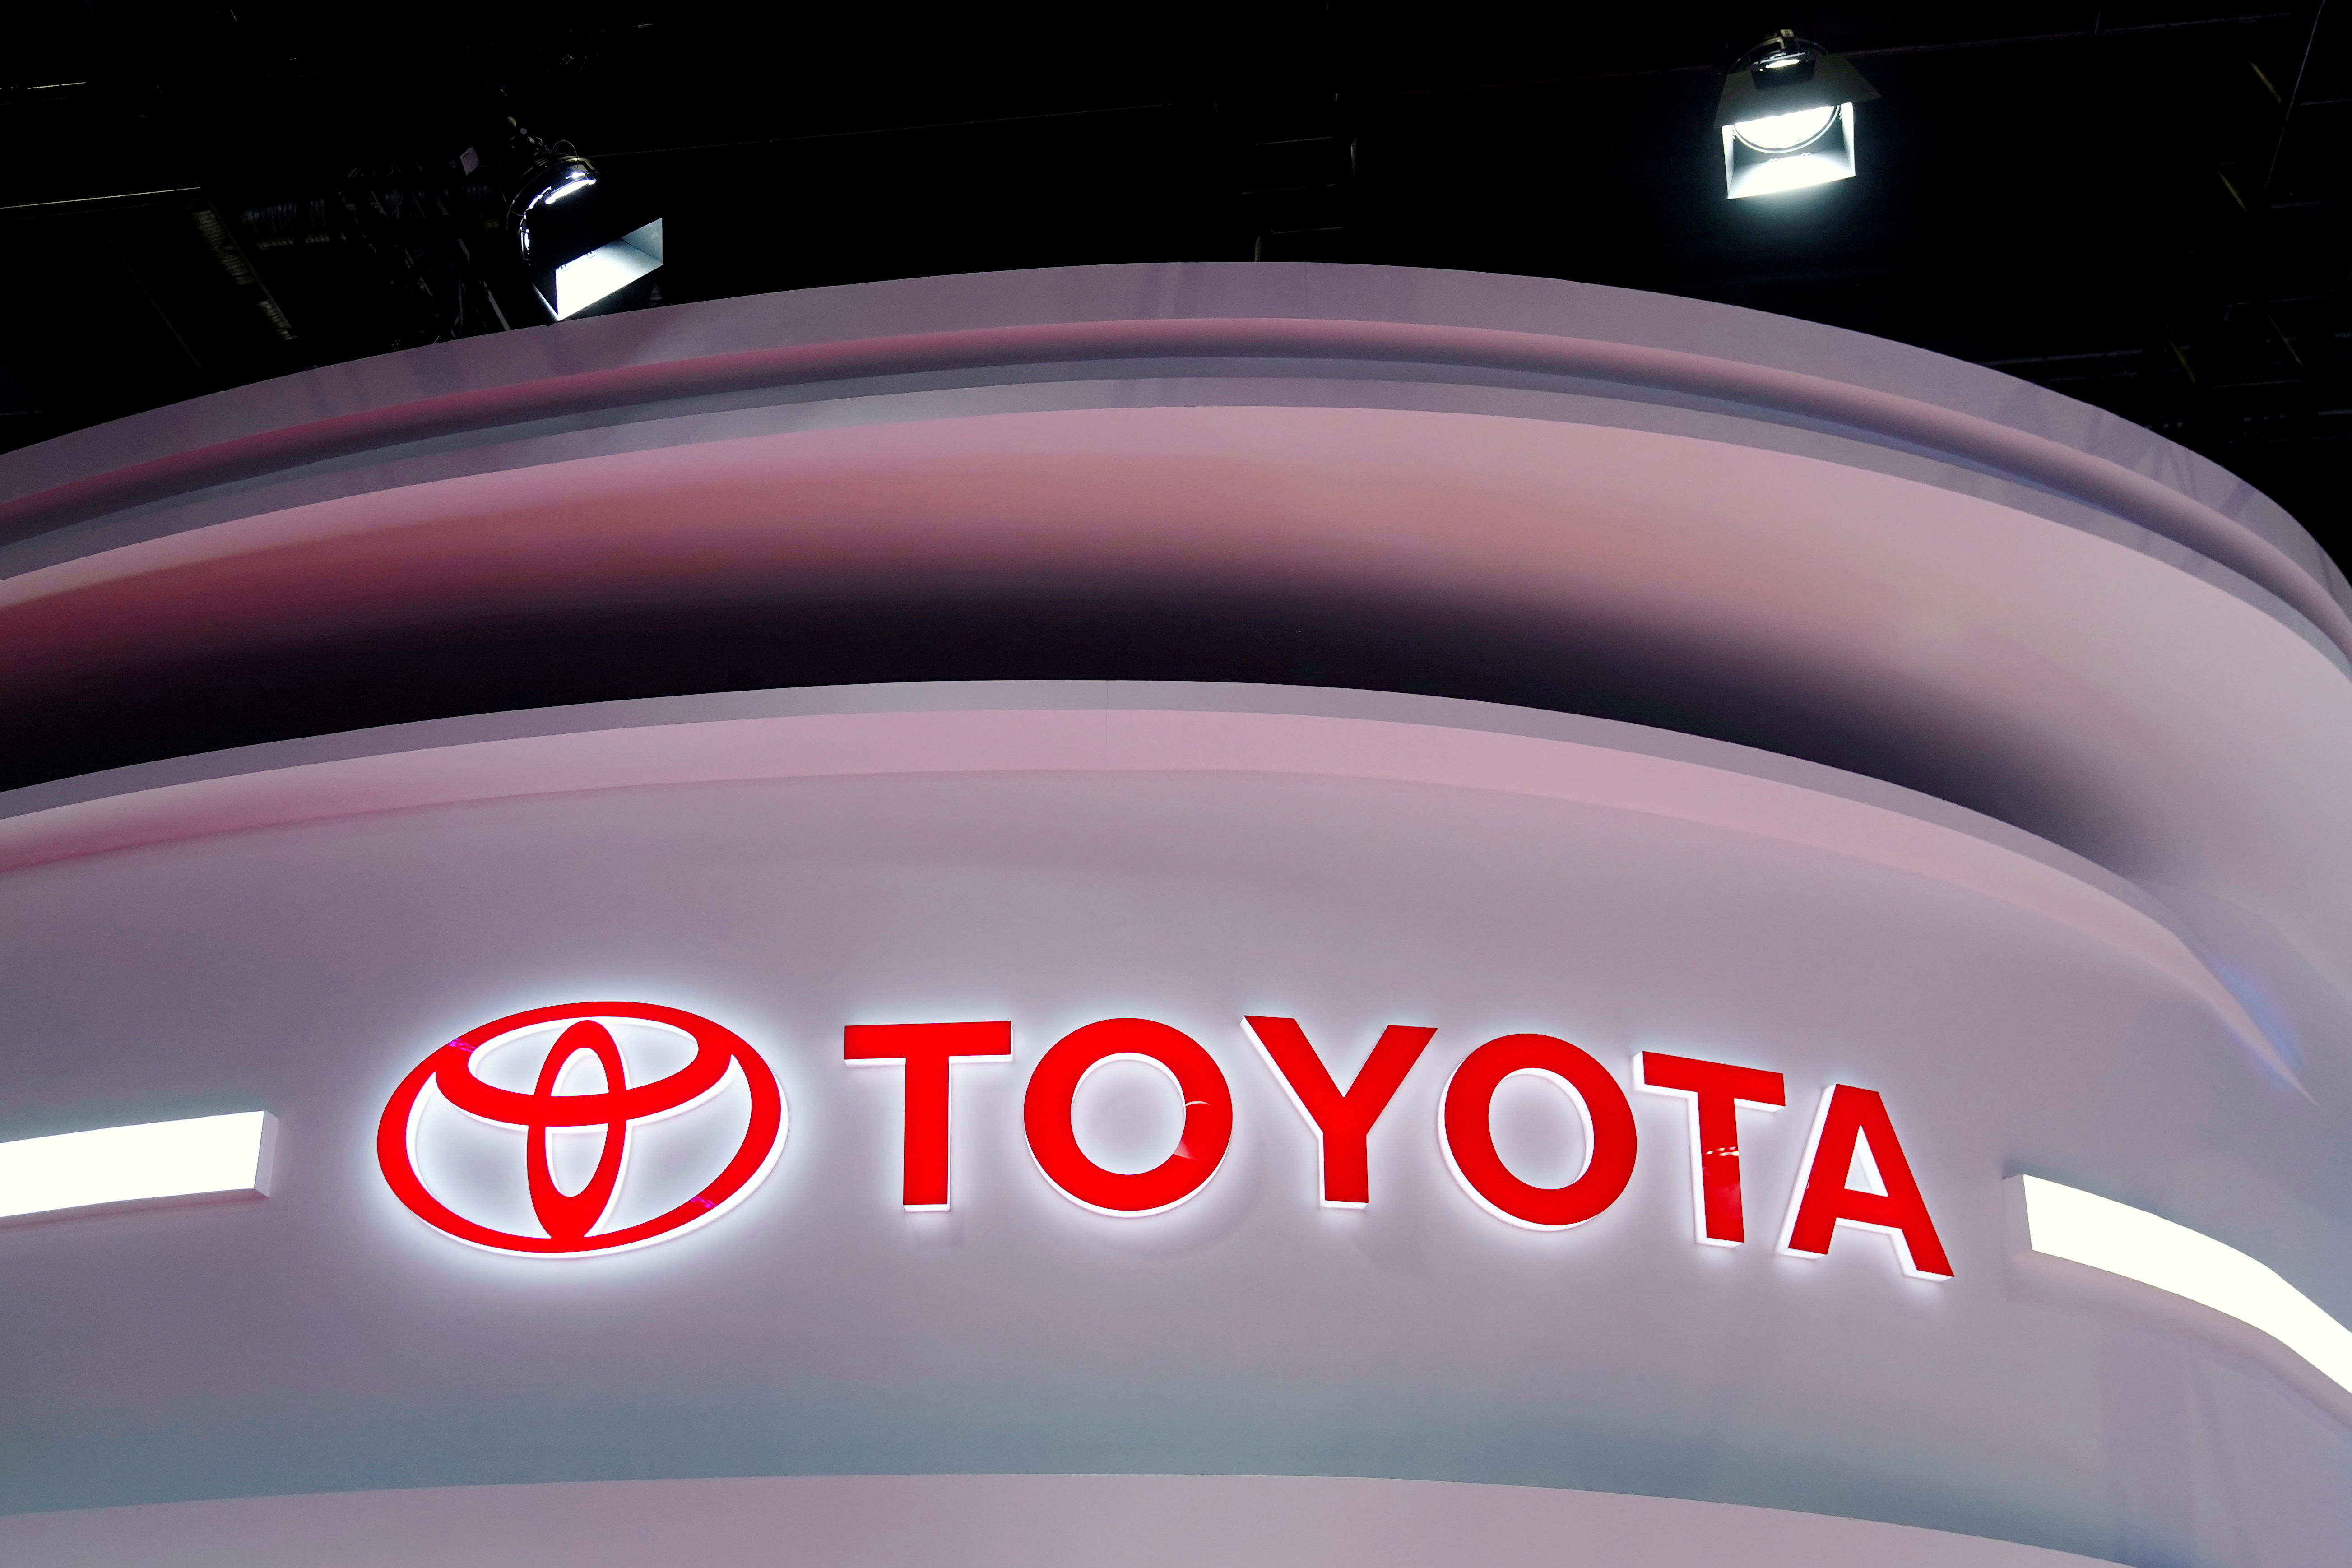 The Toyota logo is seen at a booth during a media day for the Auto Shanghai show in Shanghai, China, April 19, 2021. REUTERS/Aly Song/File Photo